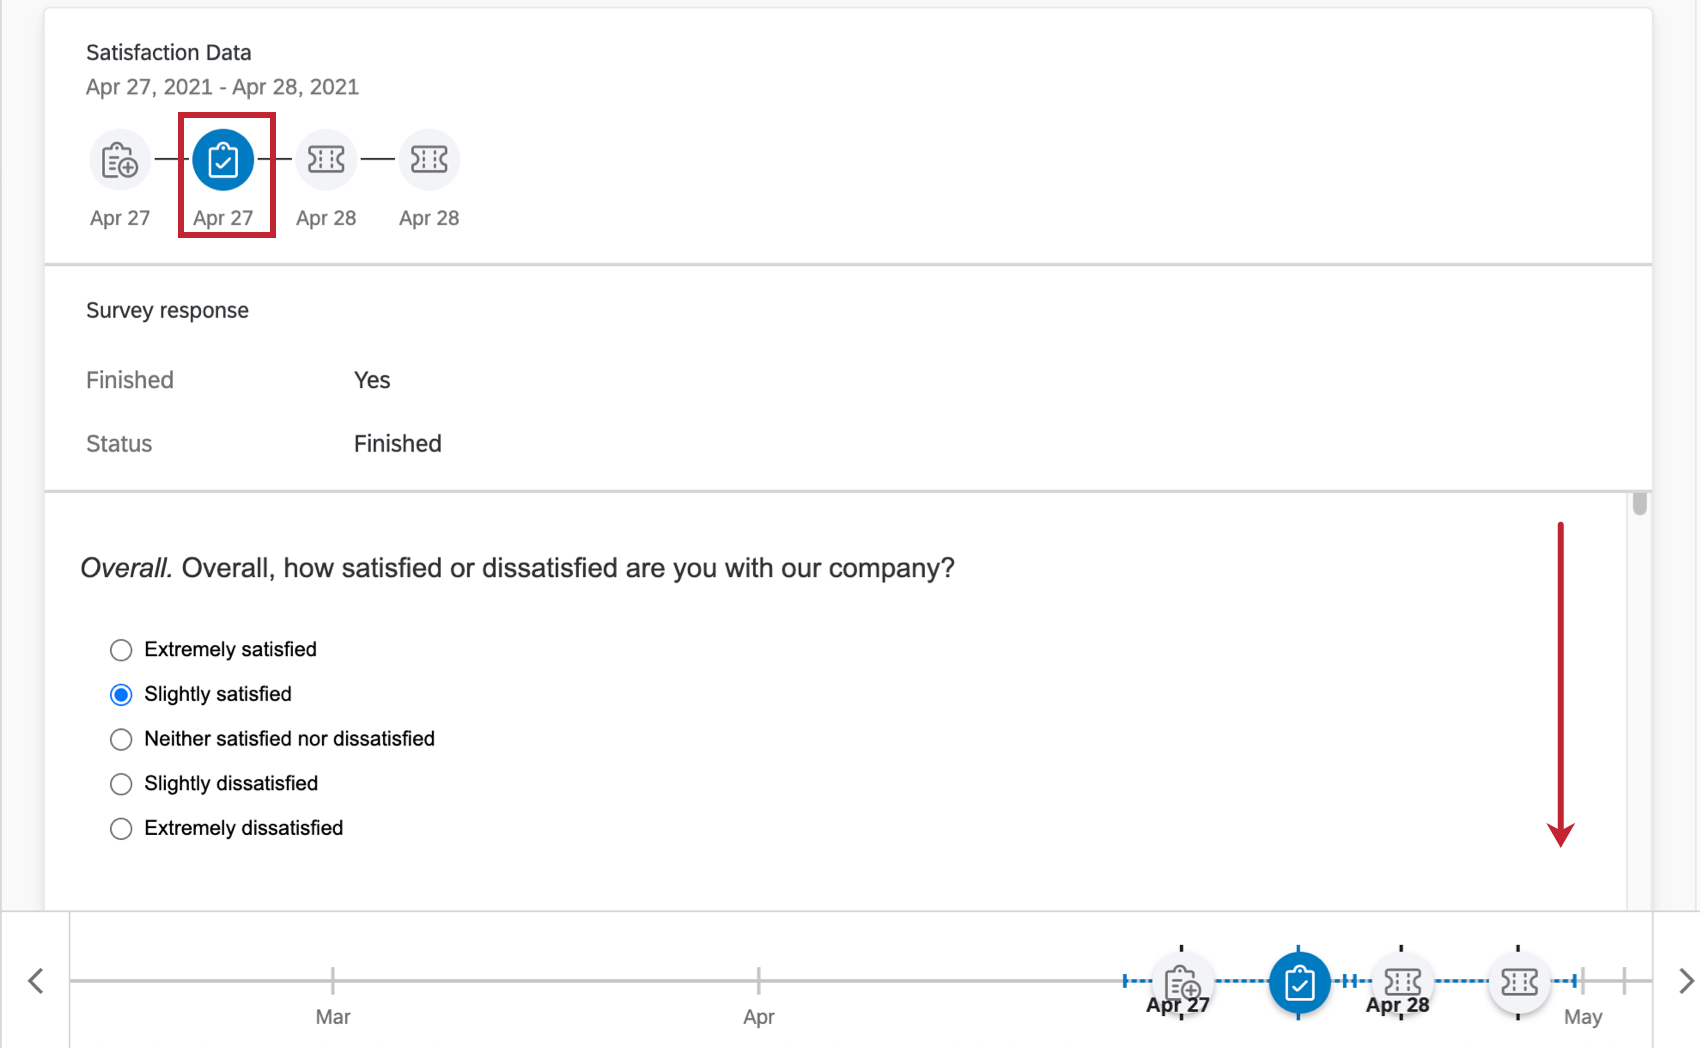 Image of a scrollable survey response